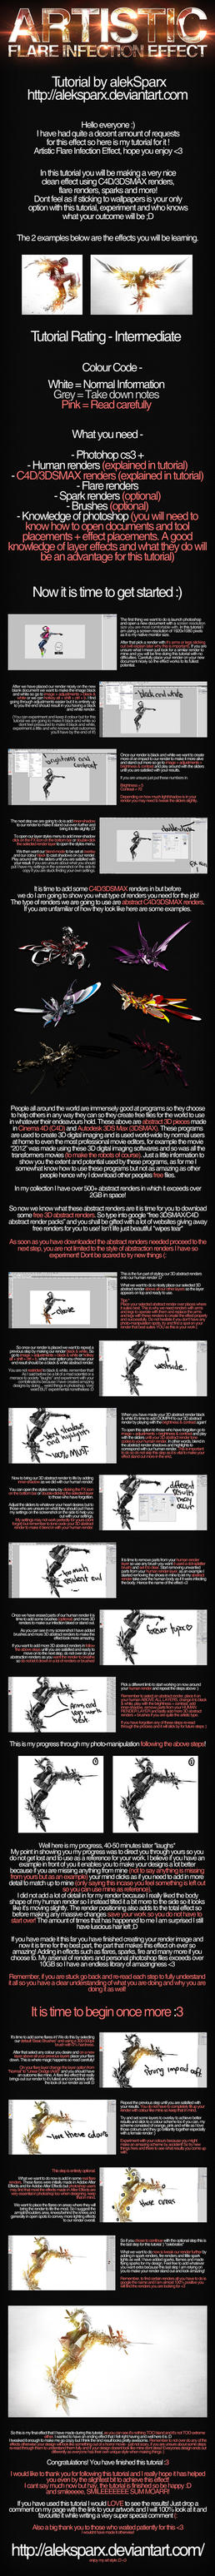 Artistic Flare Infection Effect Tutorial by alekSparx